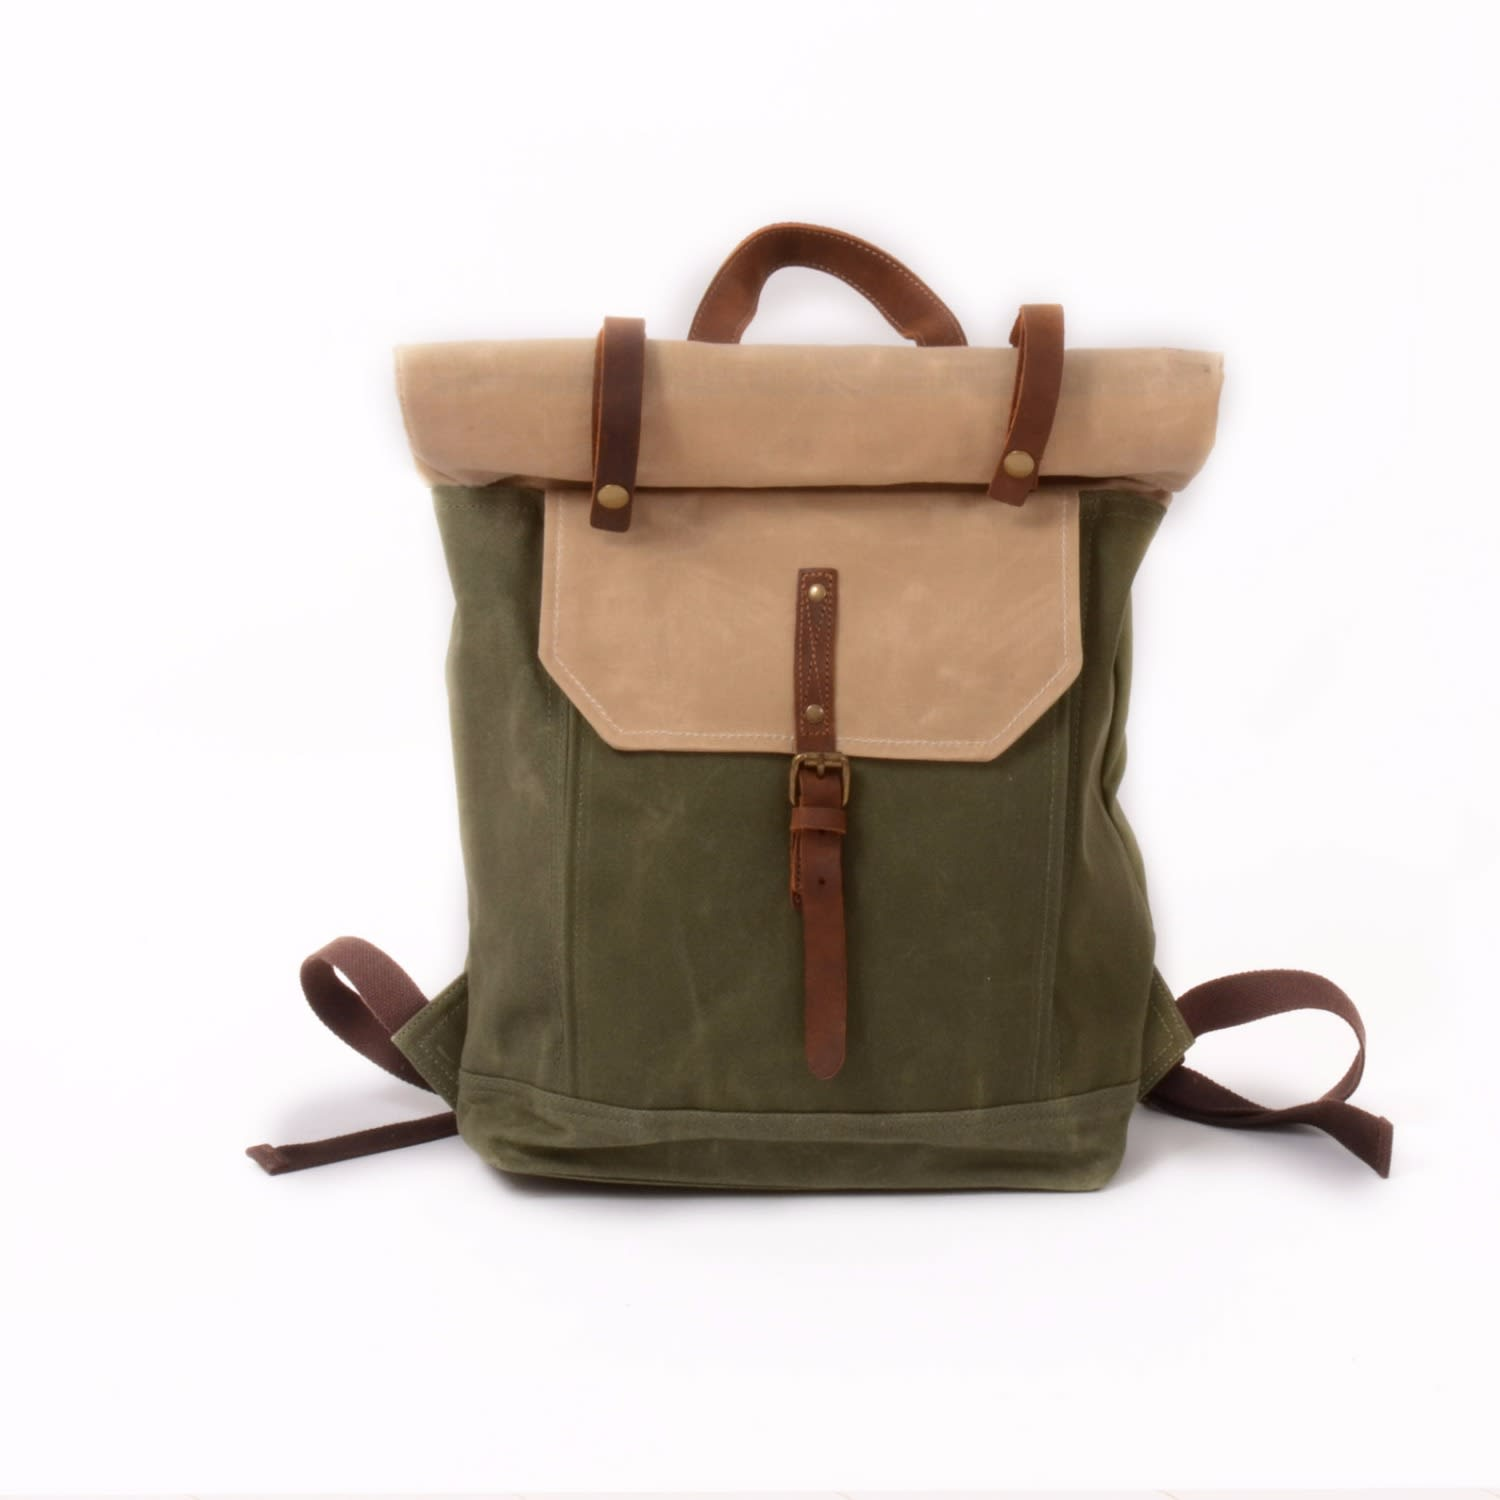 Roll Top Waxed Canvas   Leather Backpack Cream   Green  31d00f1a0f81e